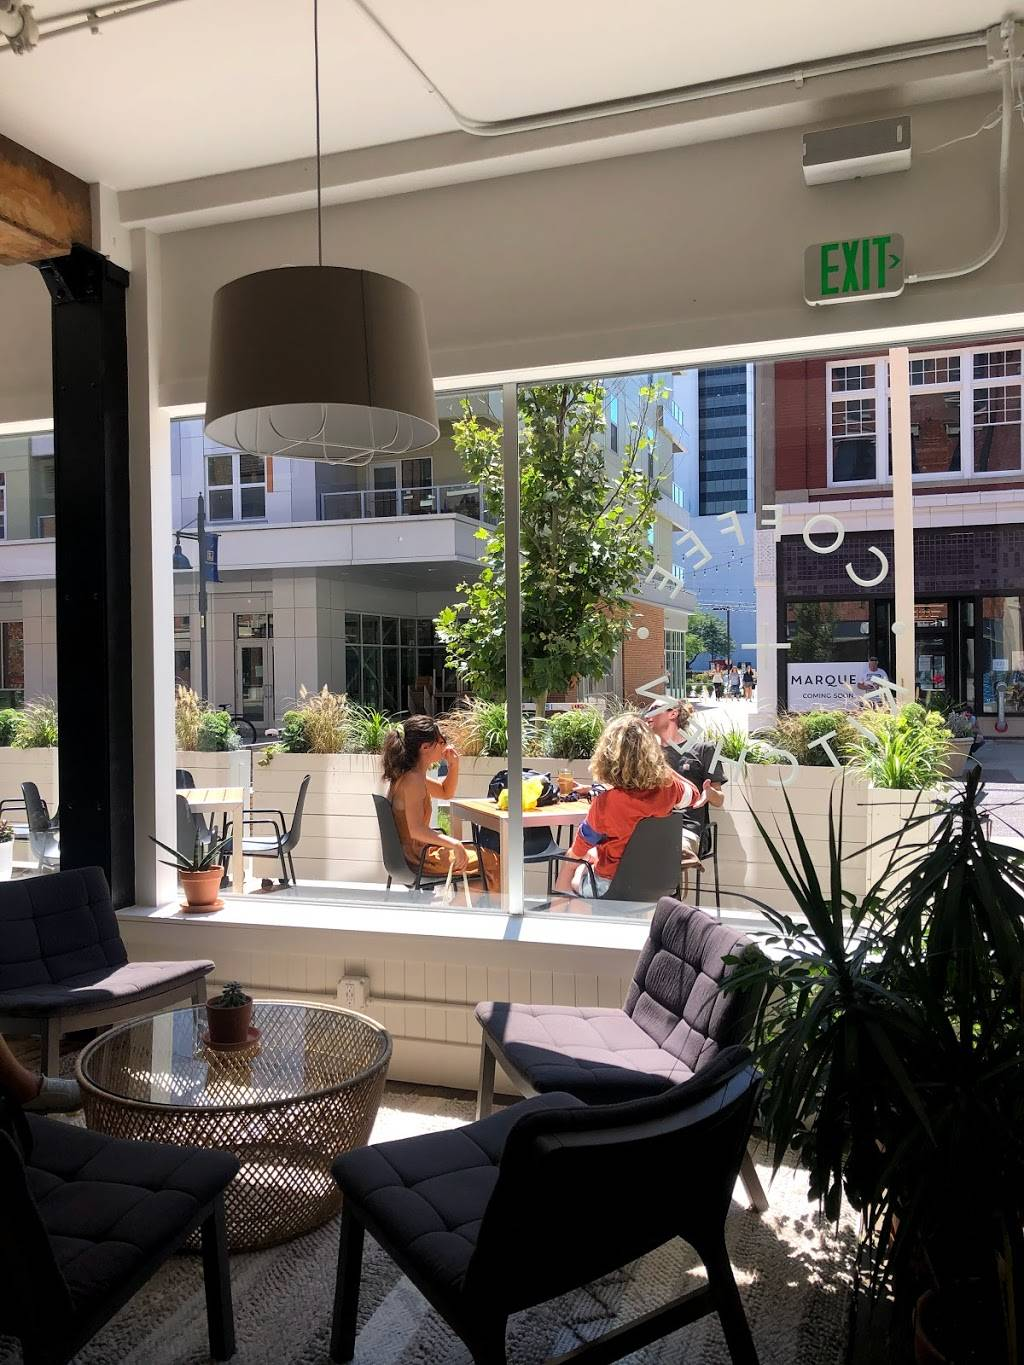 Utopian Coffee + Kitchen | cafe | 118 W Columbia St, Fort Wayne, IN 46802, USA | 2602652023 OR +1 260-265-2023